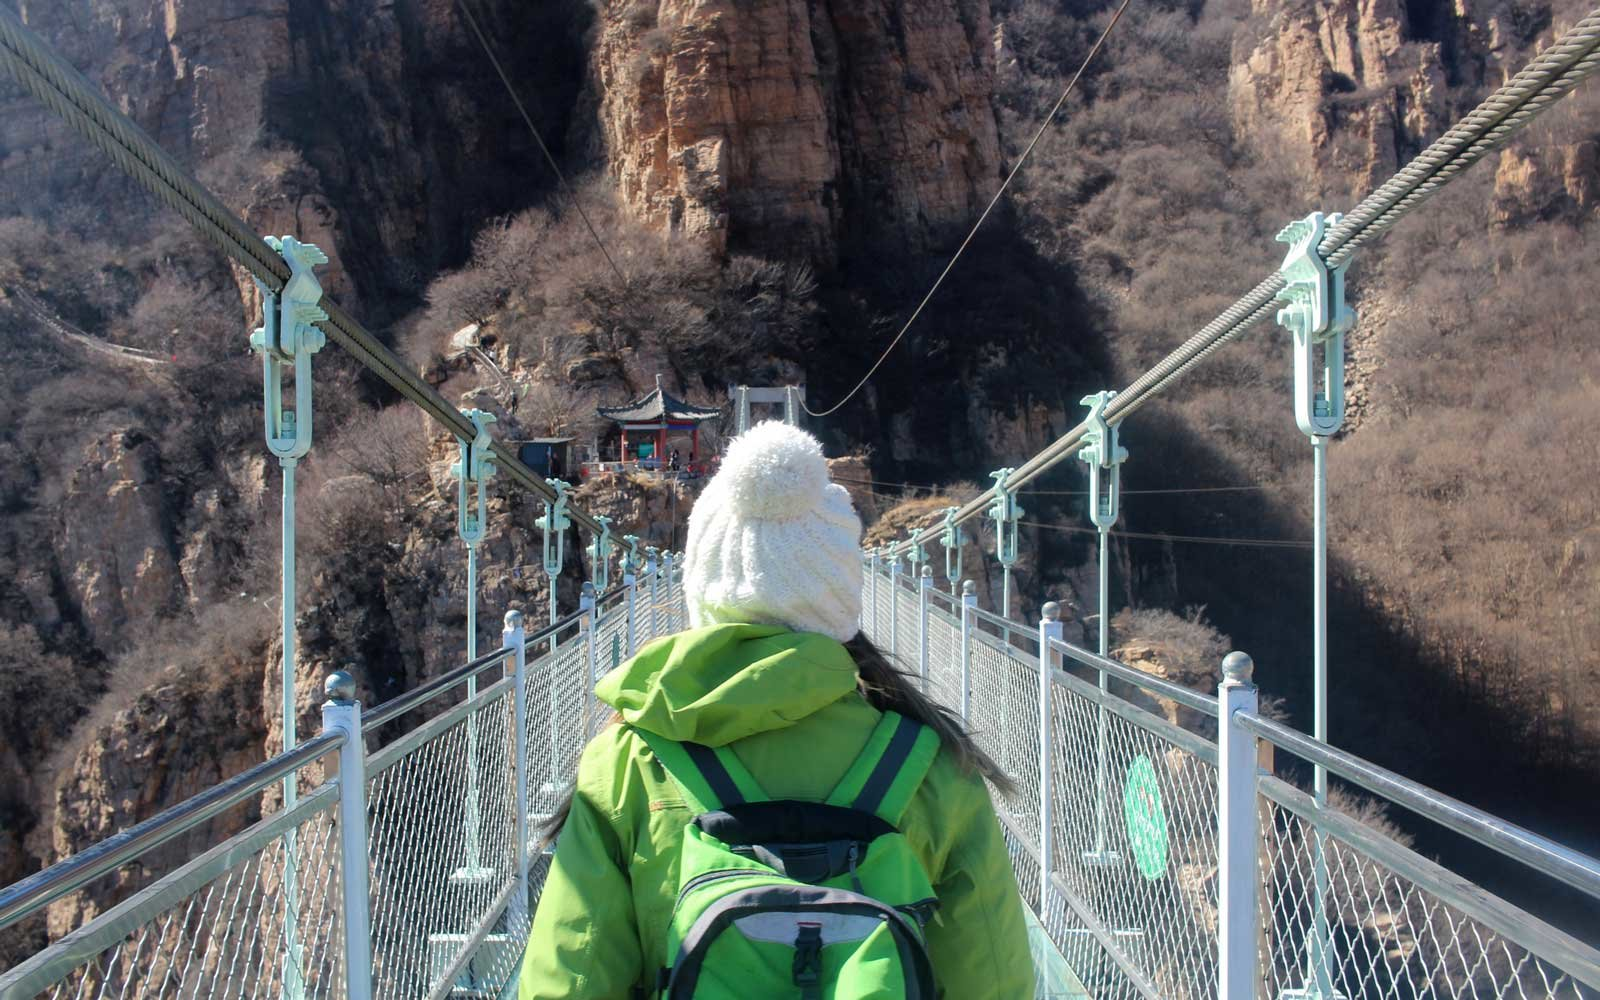 10 000 People Flocked To This Glass Bridge In China On Its